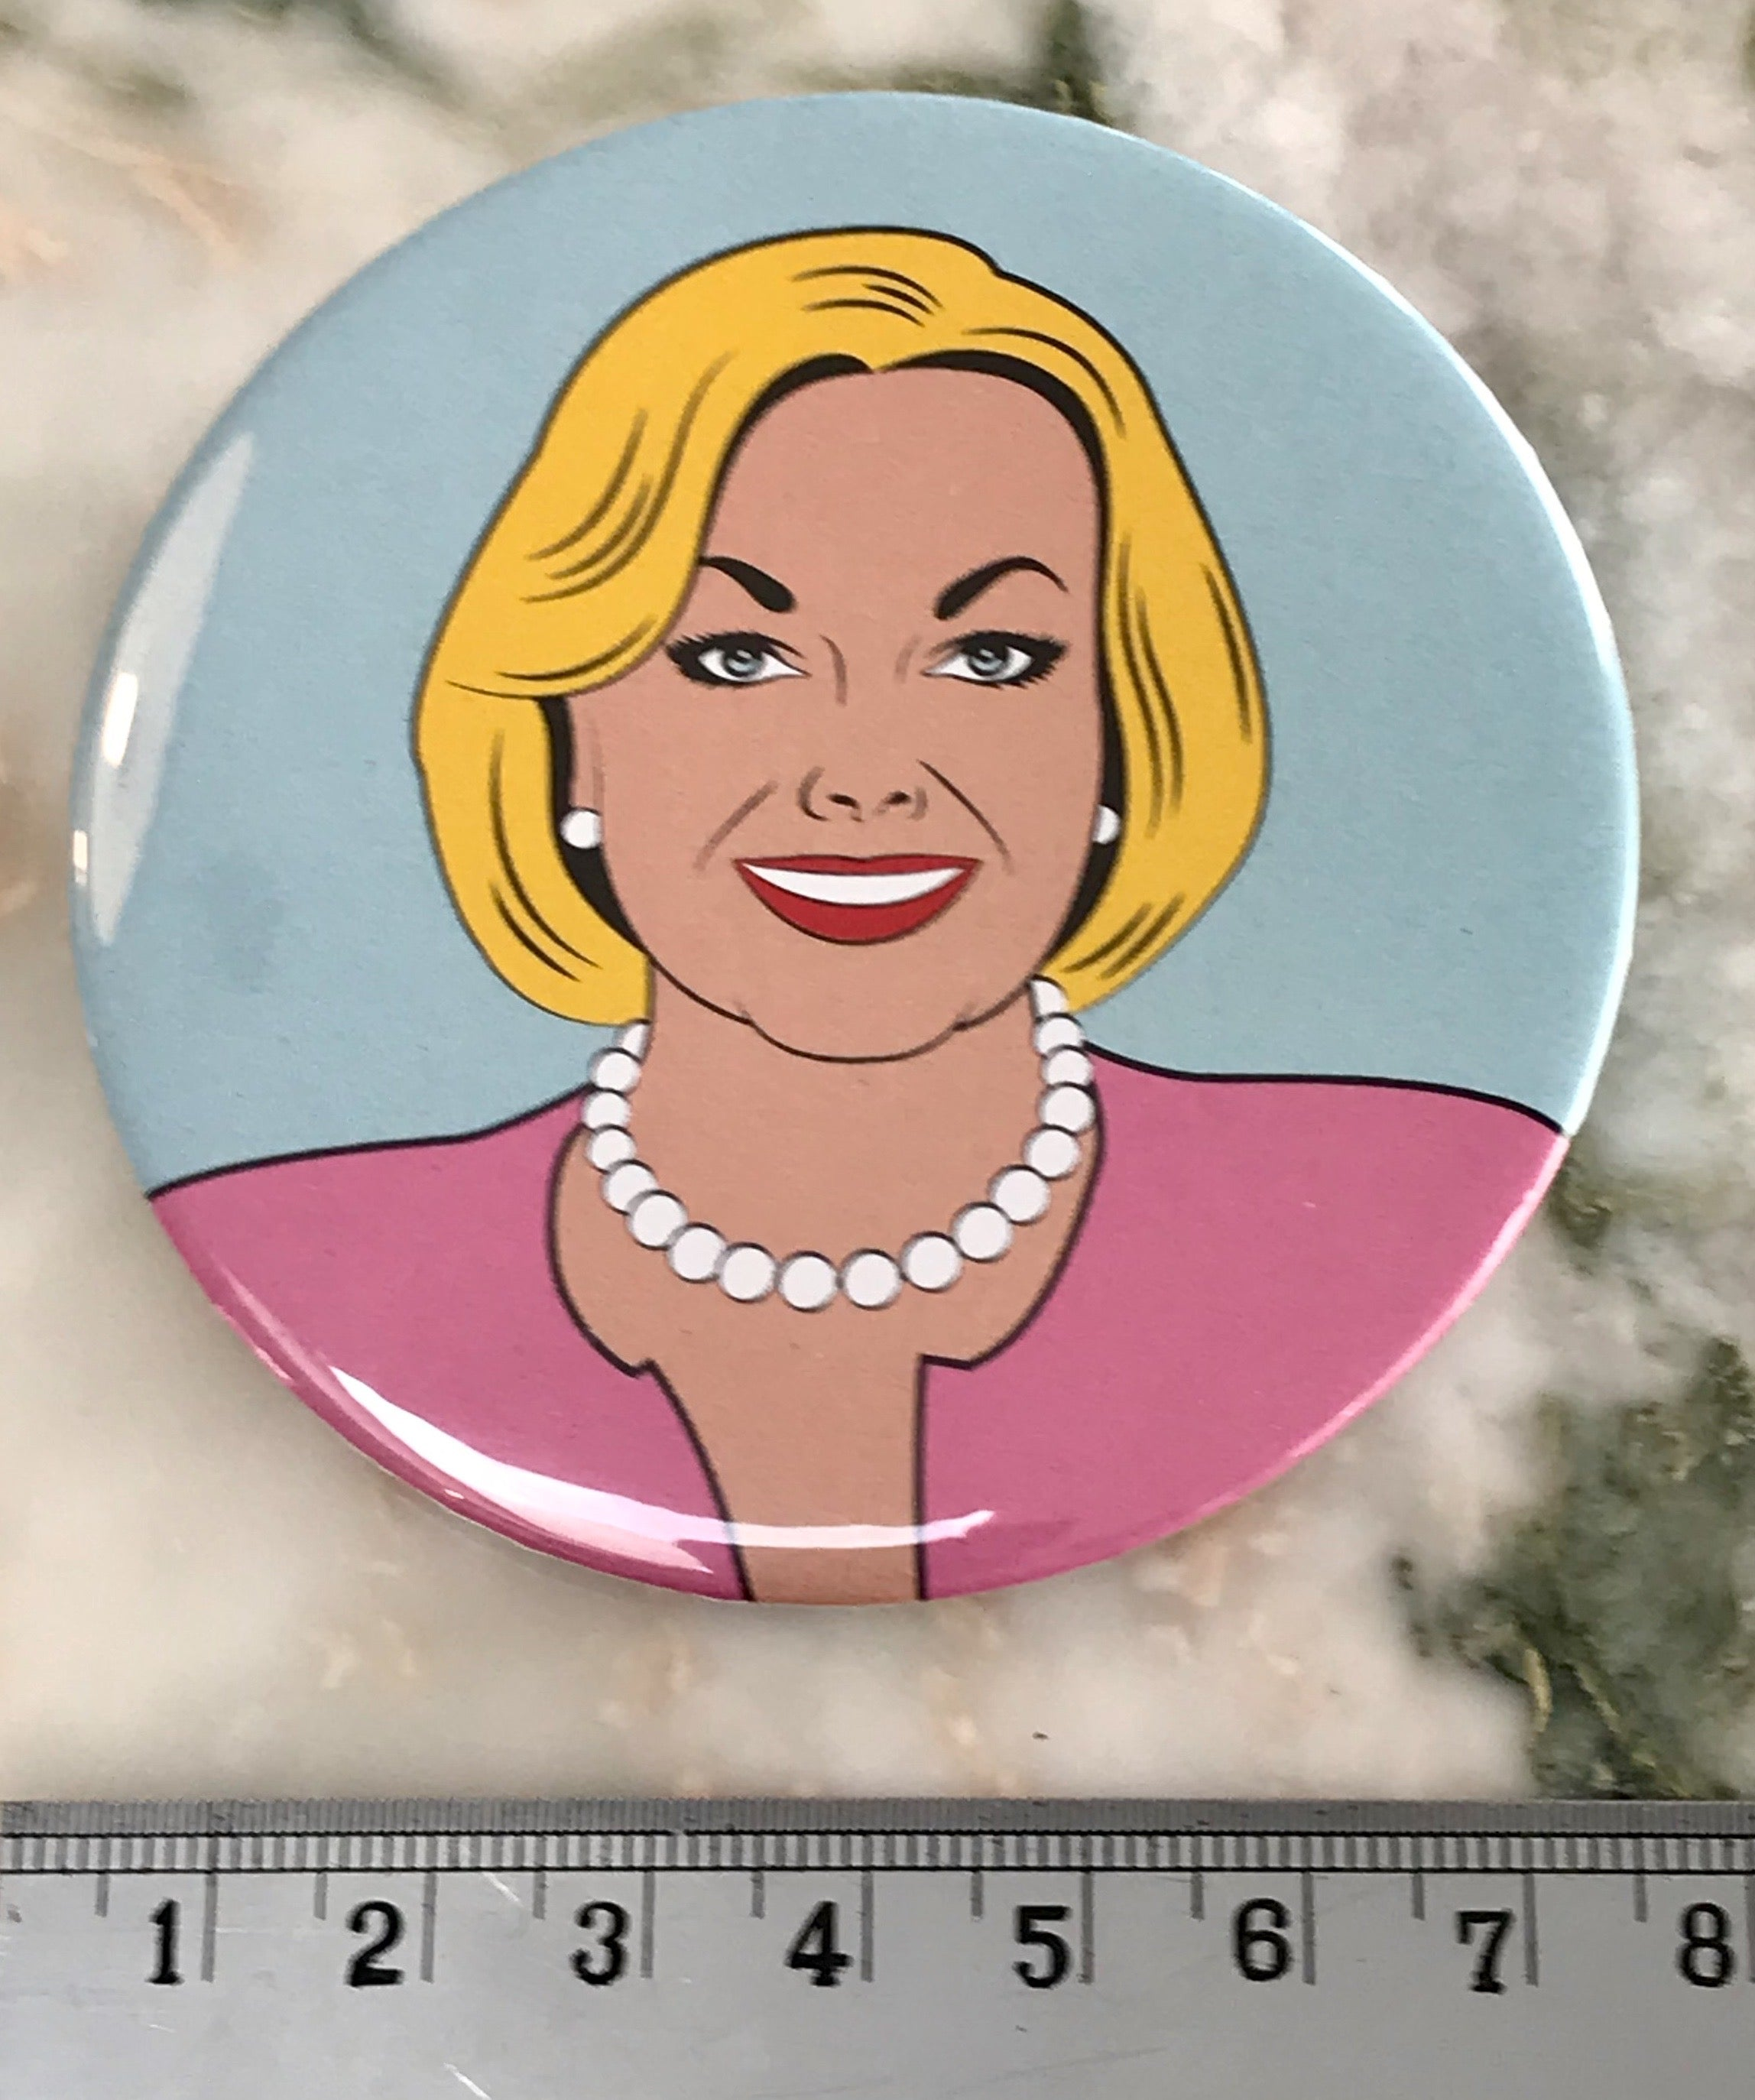 Judylicious Badge - 75mm diam